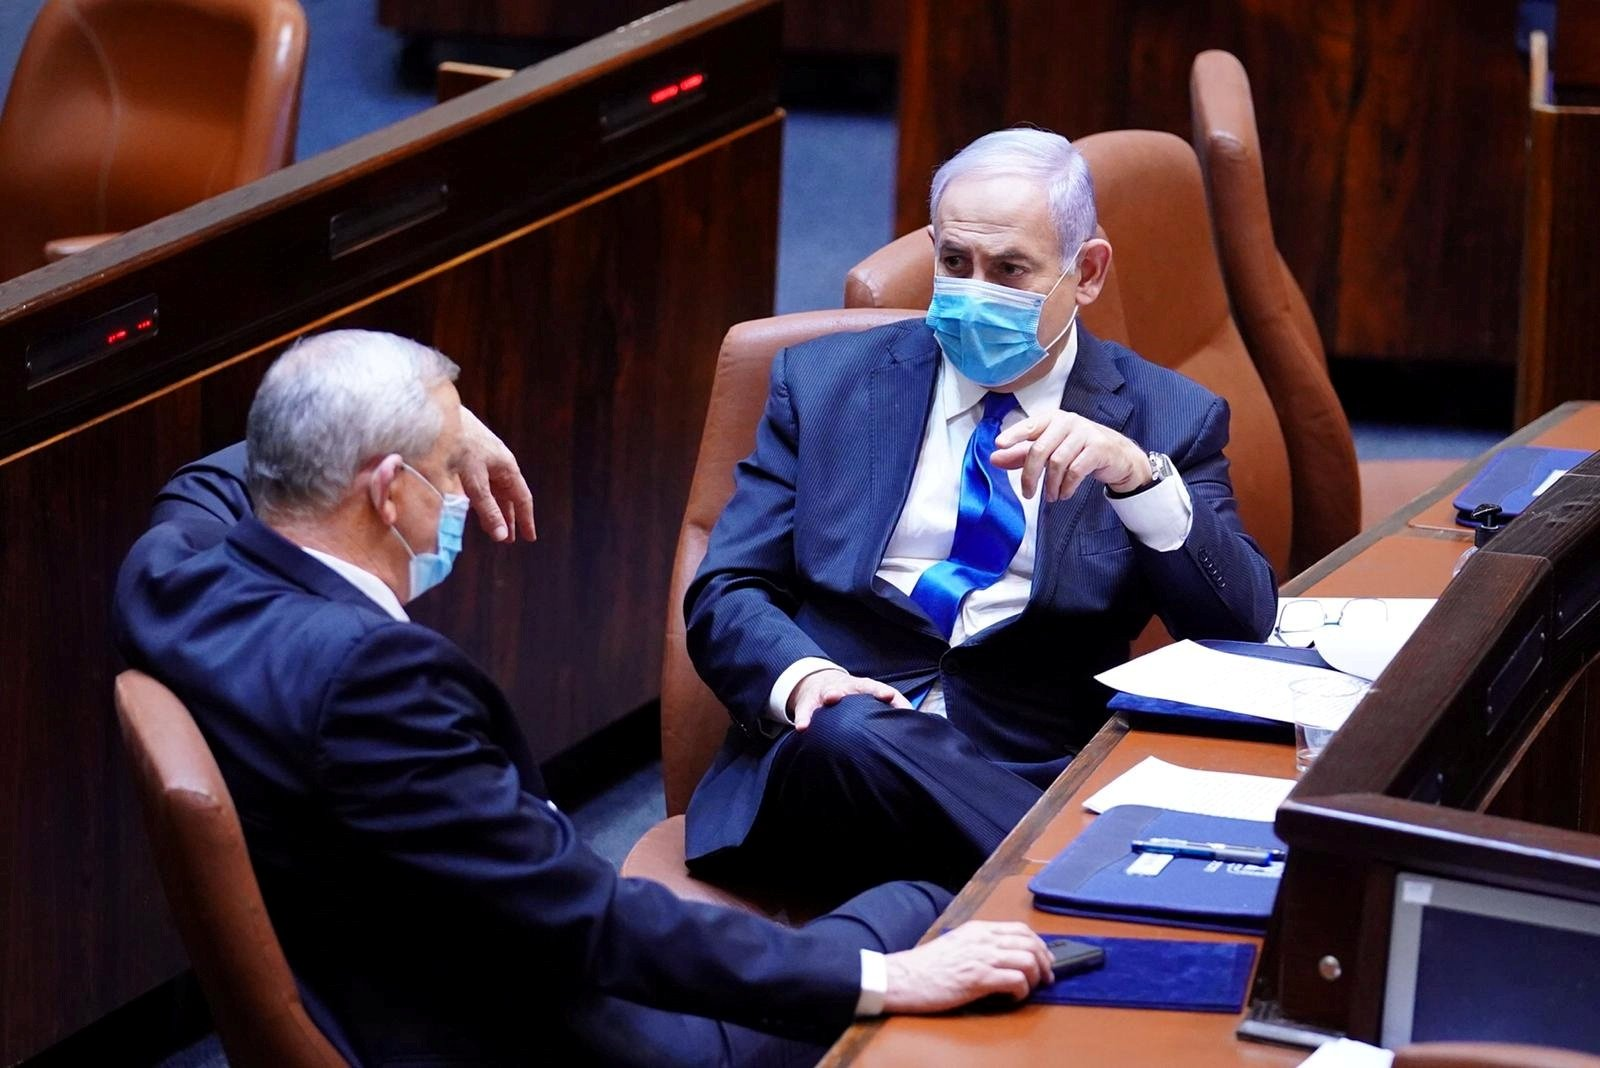 Israeli Prime Minister Benjamin Netanyahu and Benny Gantz, centrist Blue and White leader, wear masks as they talk at the Knesset, Jerusalem, May 17, 2020. (REUTERS Photo)